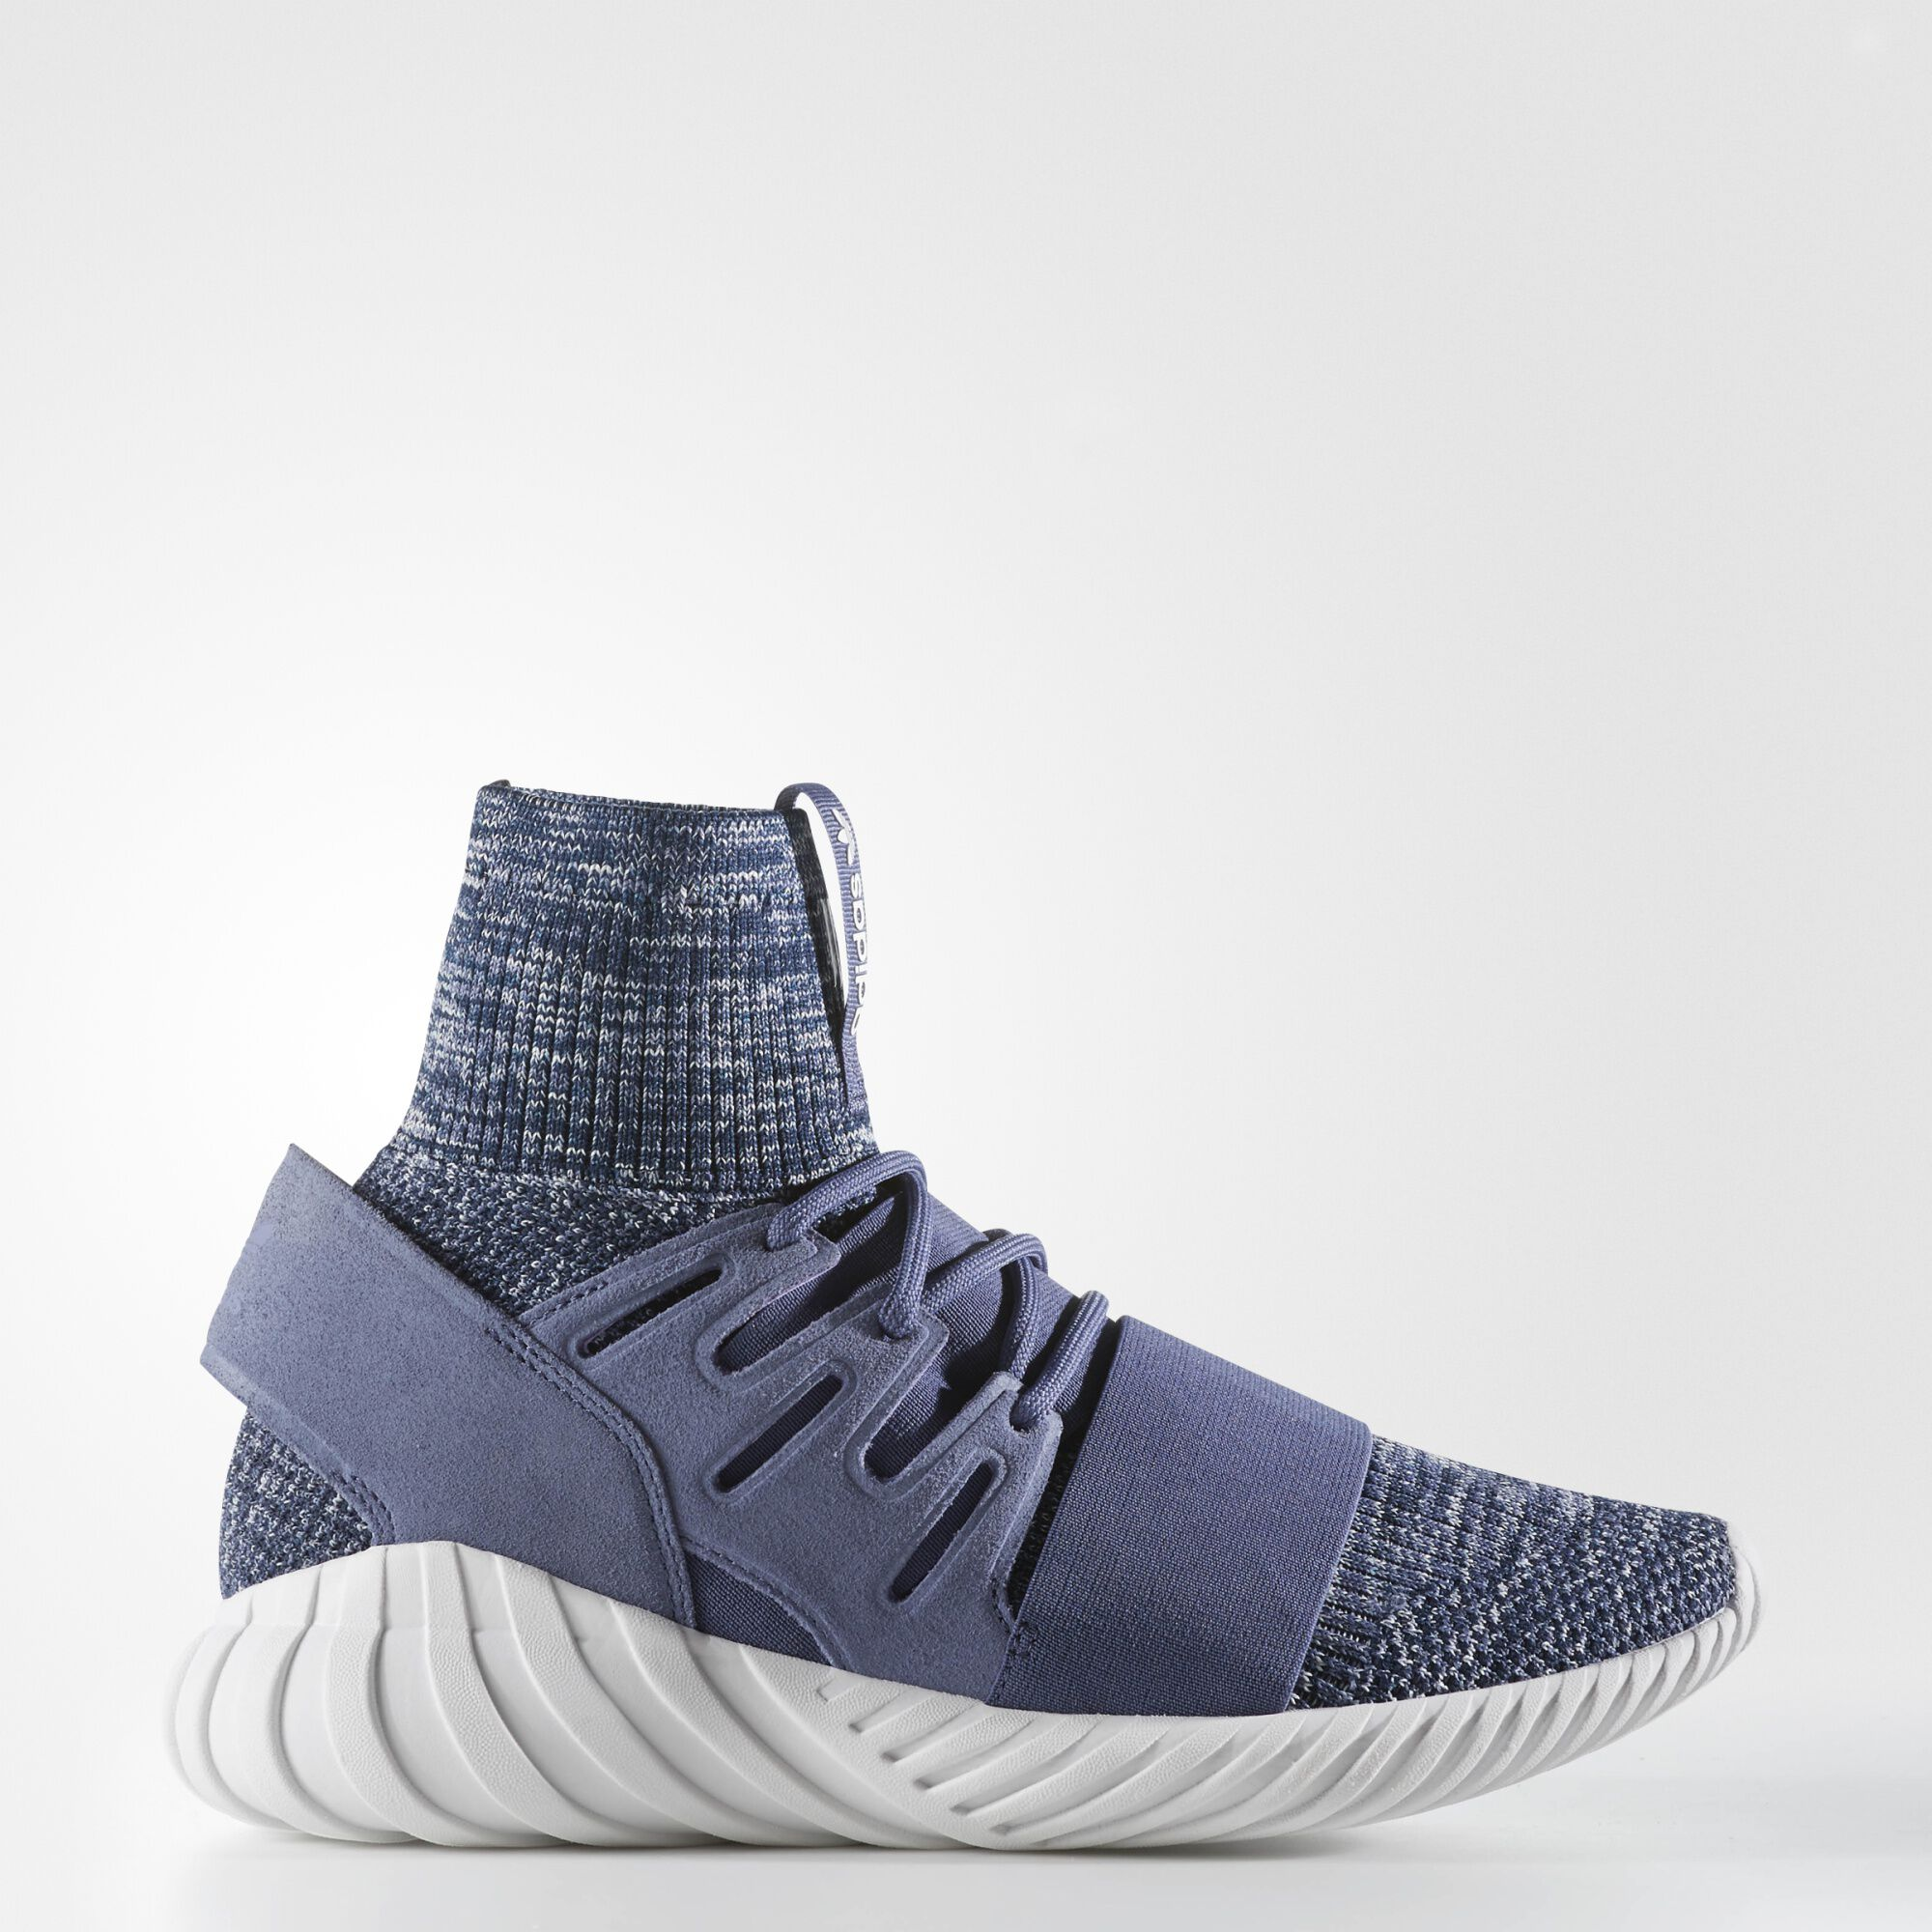 Adidas tubular viral shoes adidas shoe price range